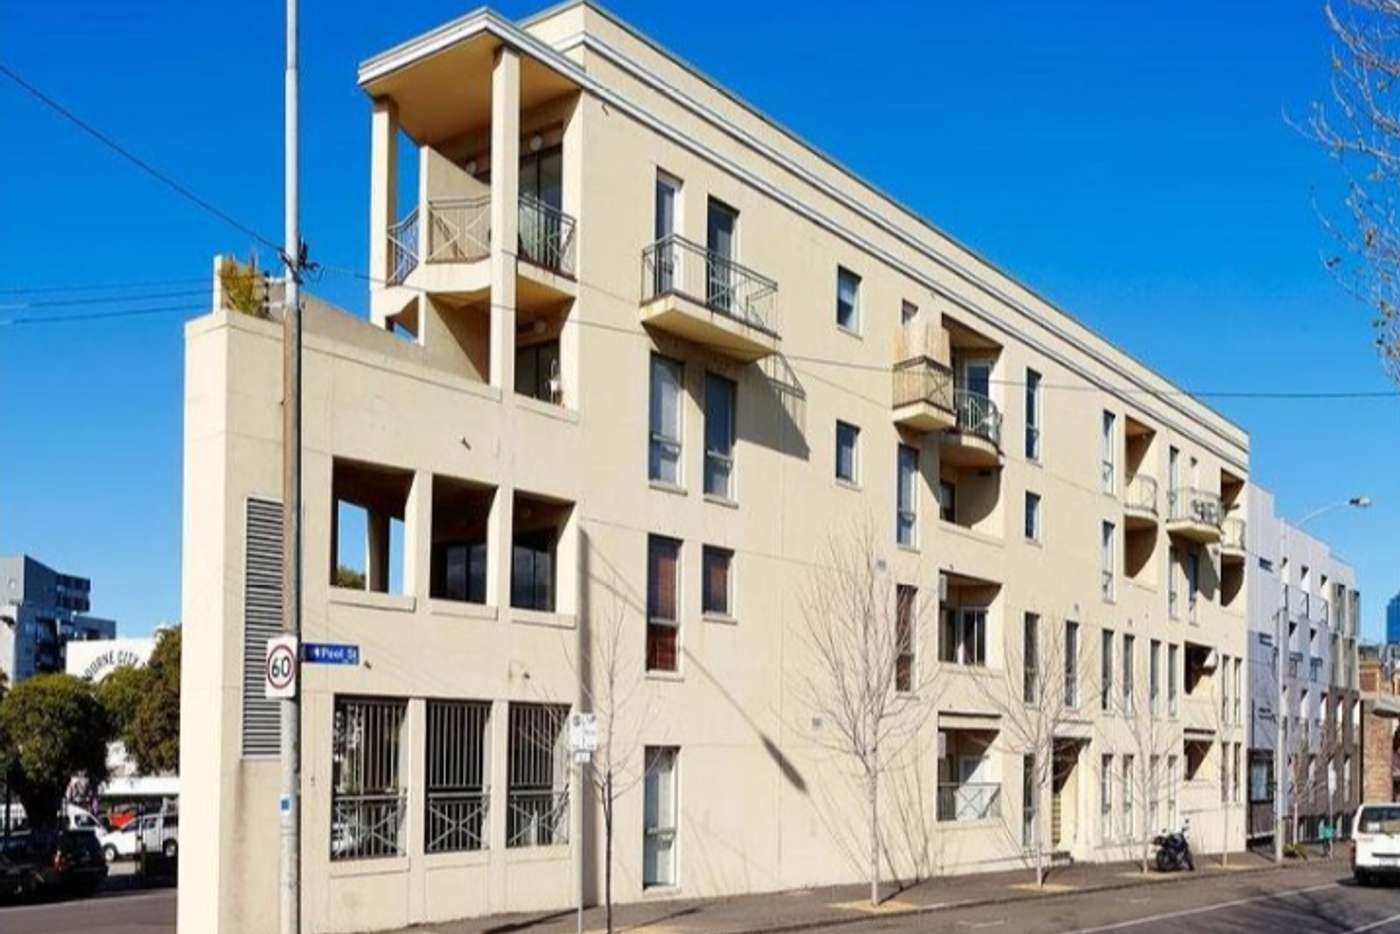 Main view of Homely apartment listing, 8/198 Peel Street, North Melbourne VIC 3051